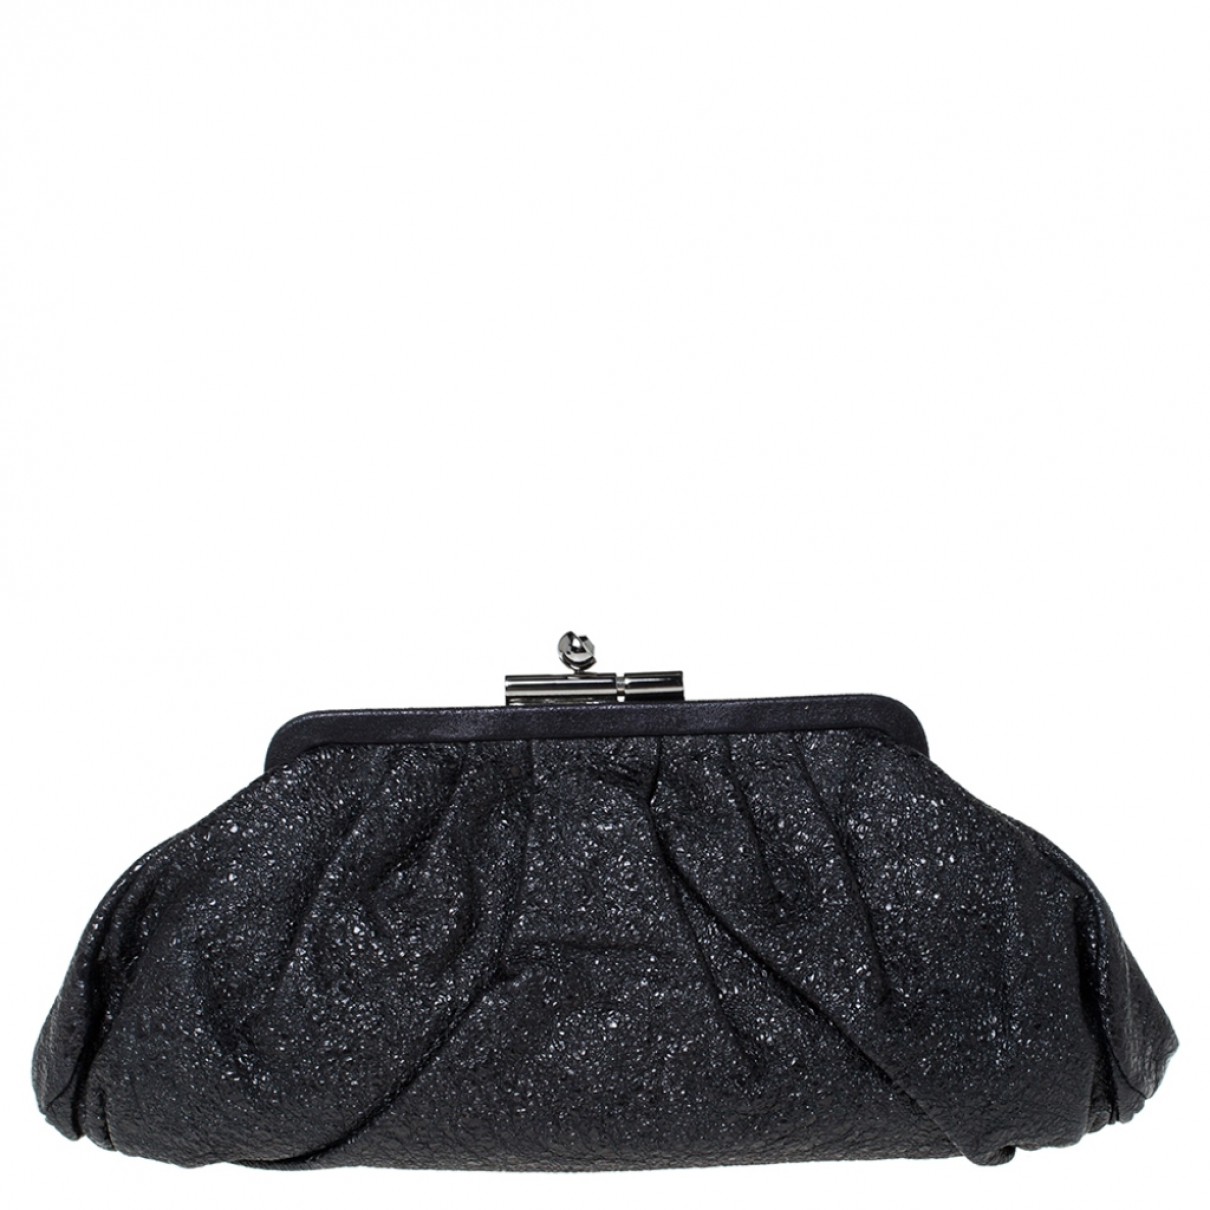 Chanel \N Clutch in  Schwarz Leder